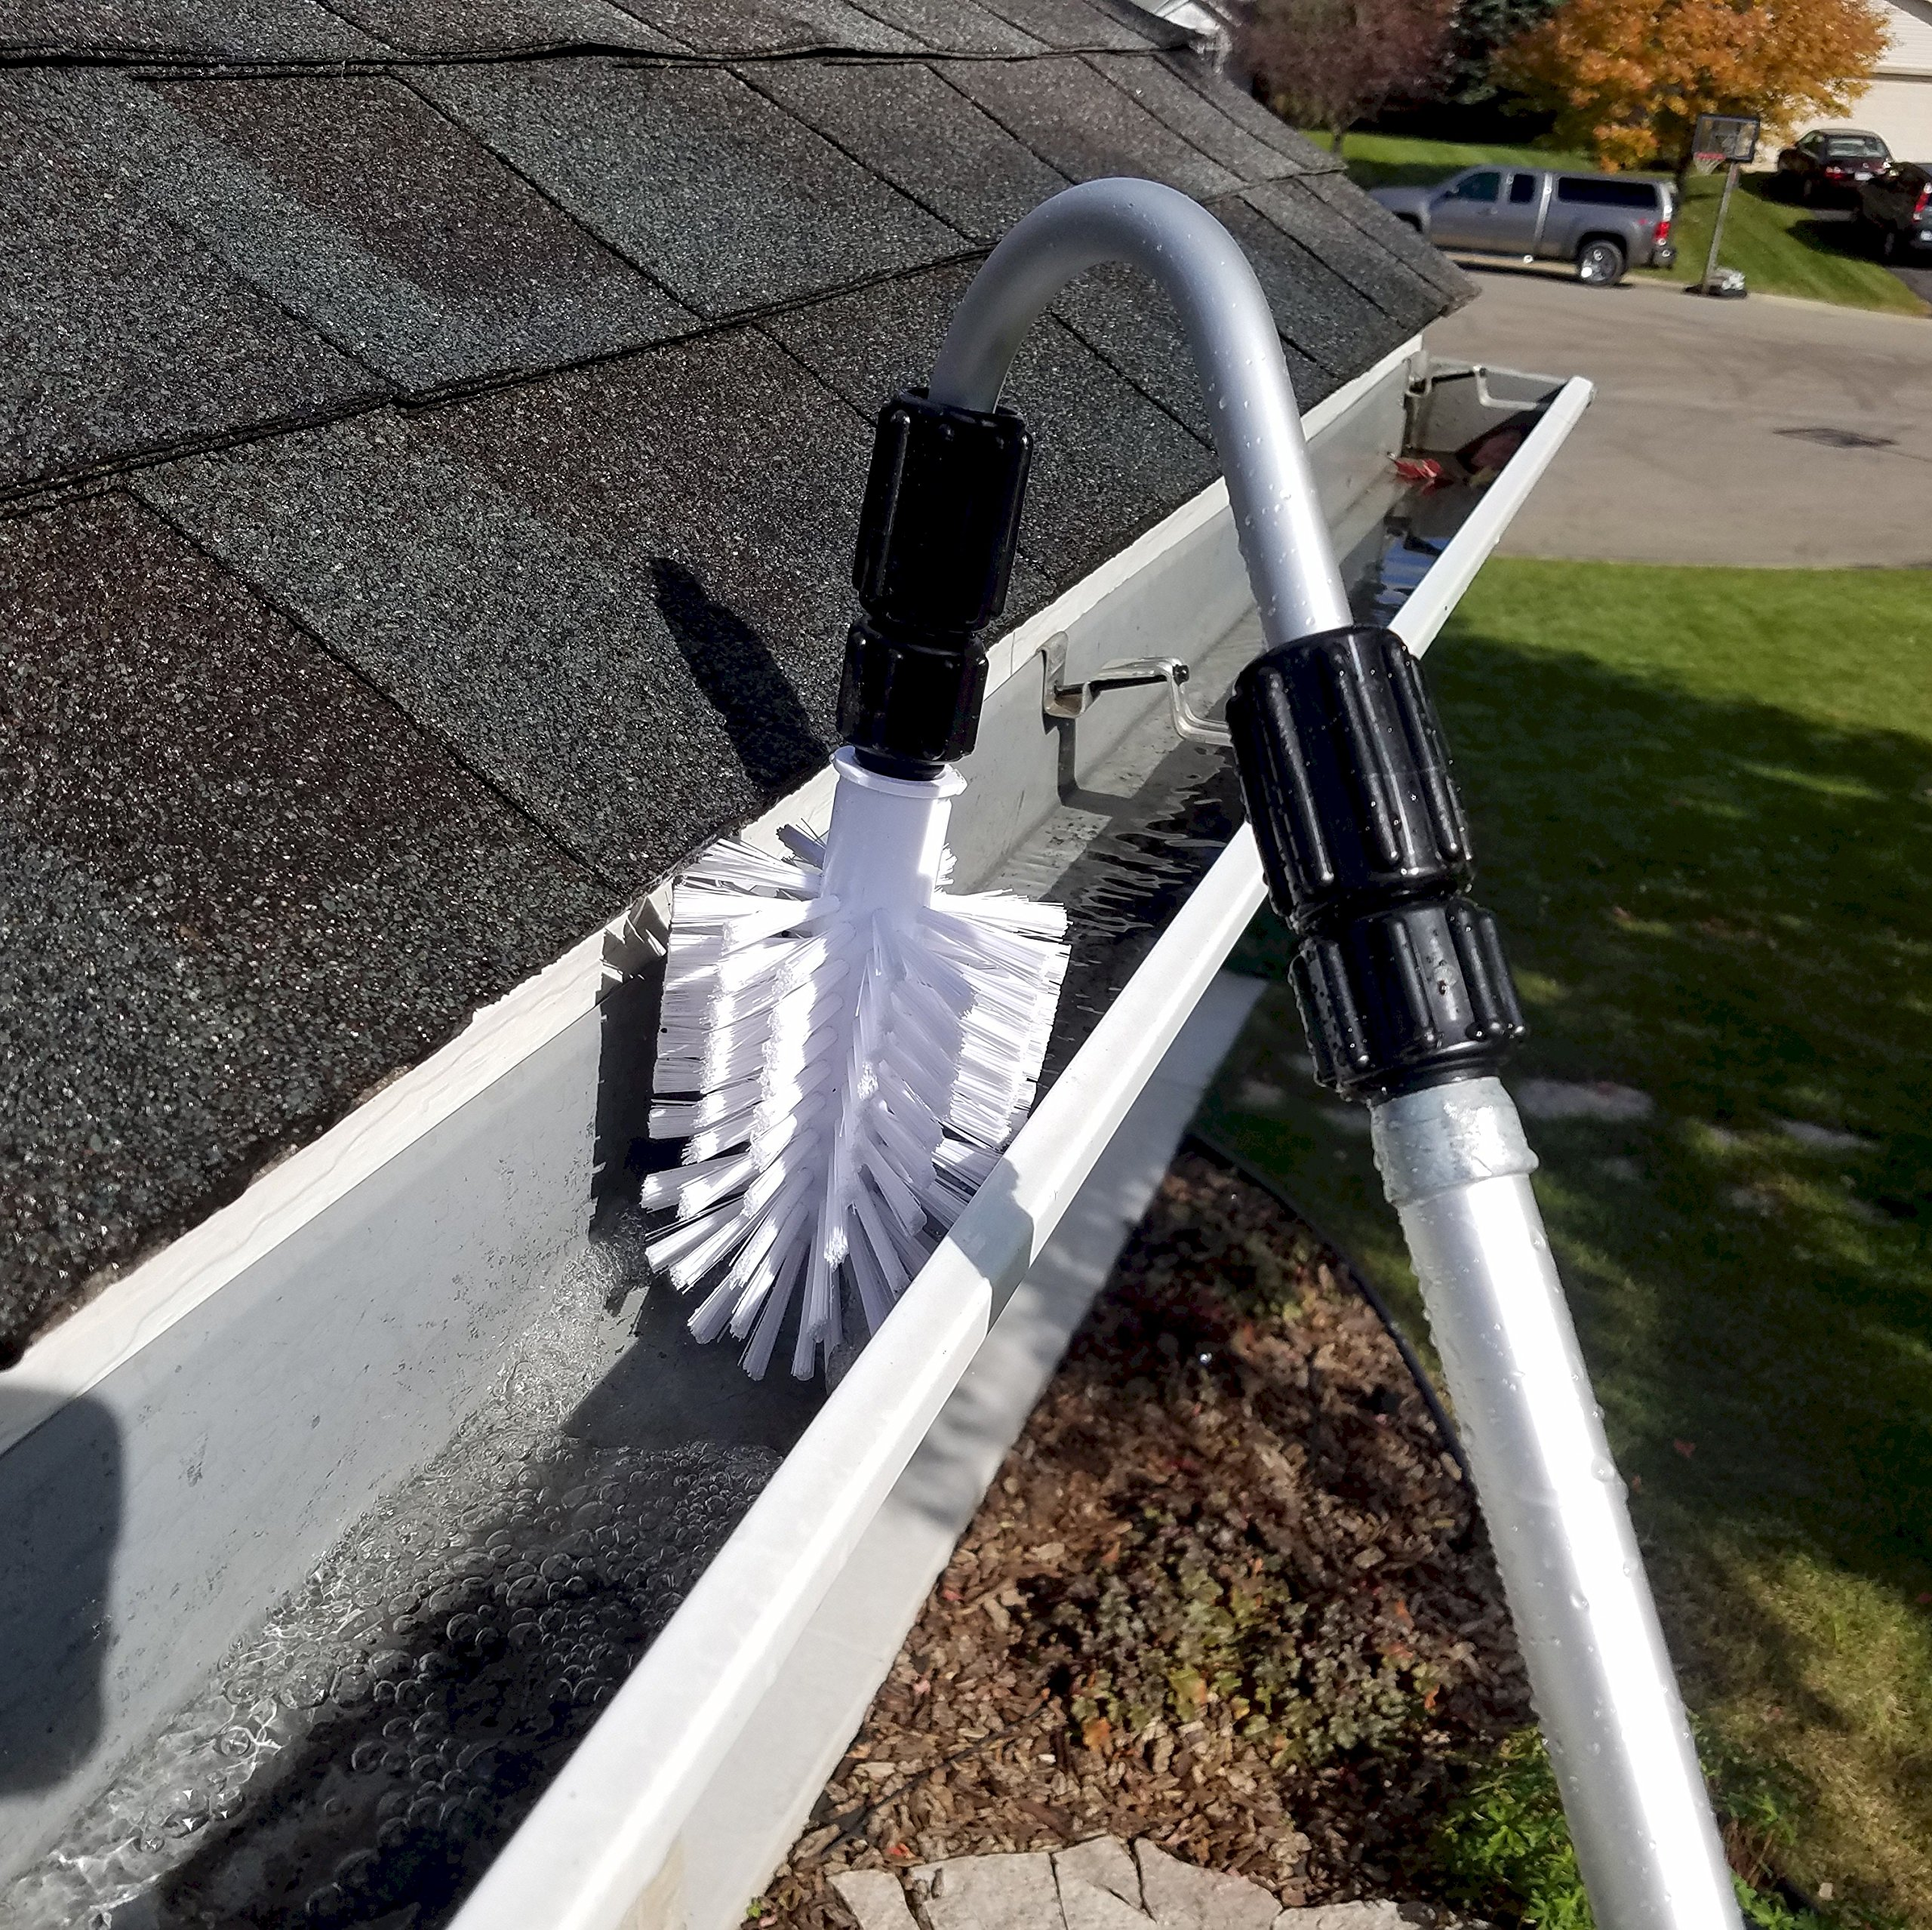 Ezy Flo Deluxe High Reach Gutter/Window/Patio Cleaning Kit by Ezy Flo (Image #5)